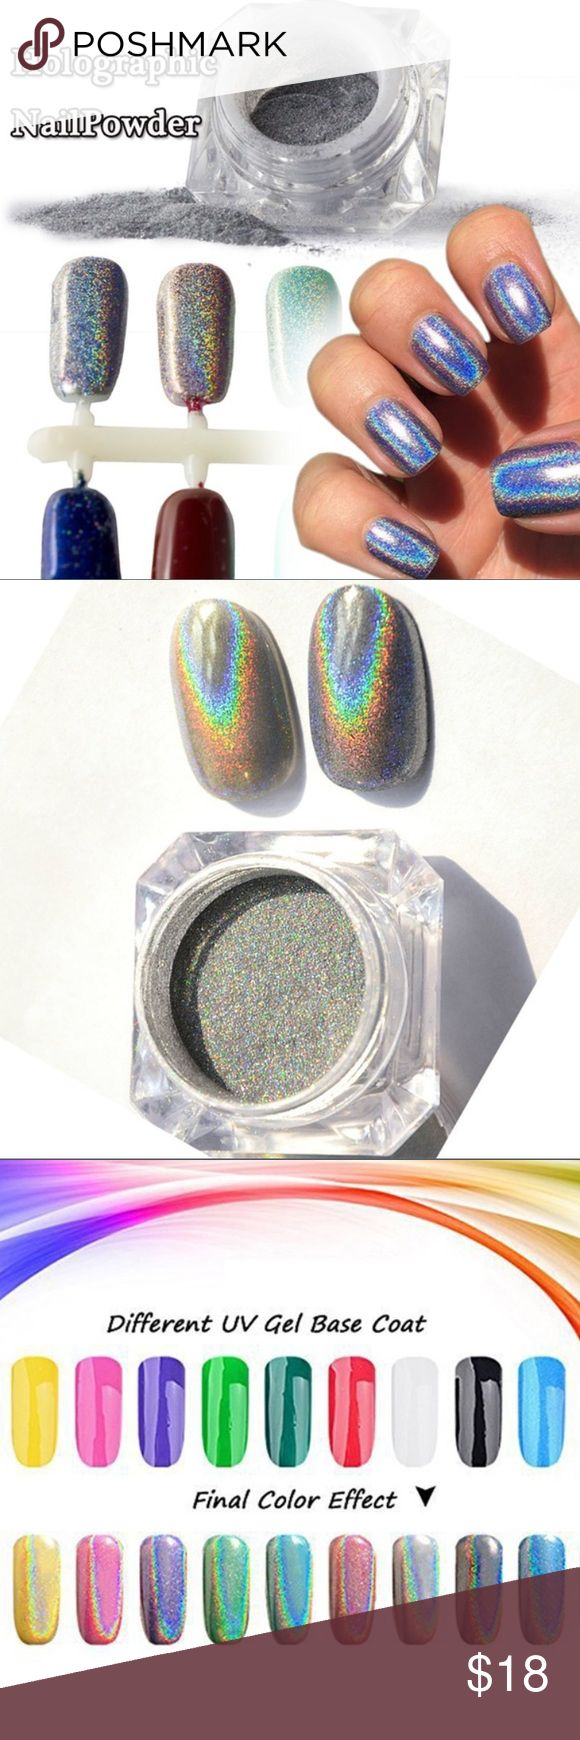 🎀New list! 🎀 Holographic nail powder! This holographic Nail powder is a fun was to spice up your nails! Is a amazing with any base coat you use! As seen in picture different color bass oats equal slightly different fun holographic shades! This list comes with a container of the power and an application brush! See picture above for application instructions! Makeup